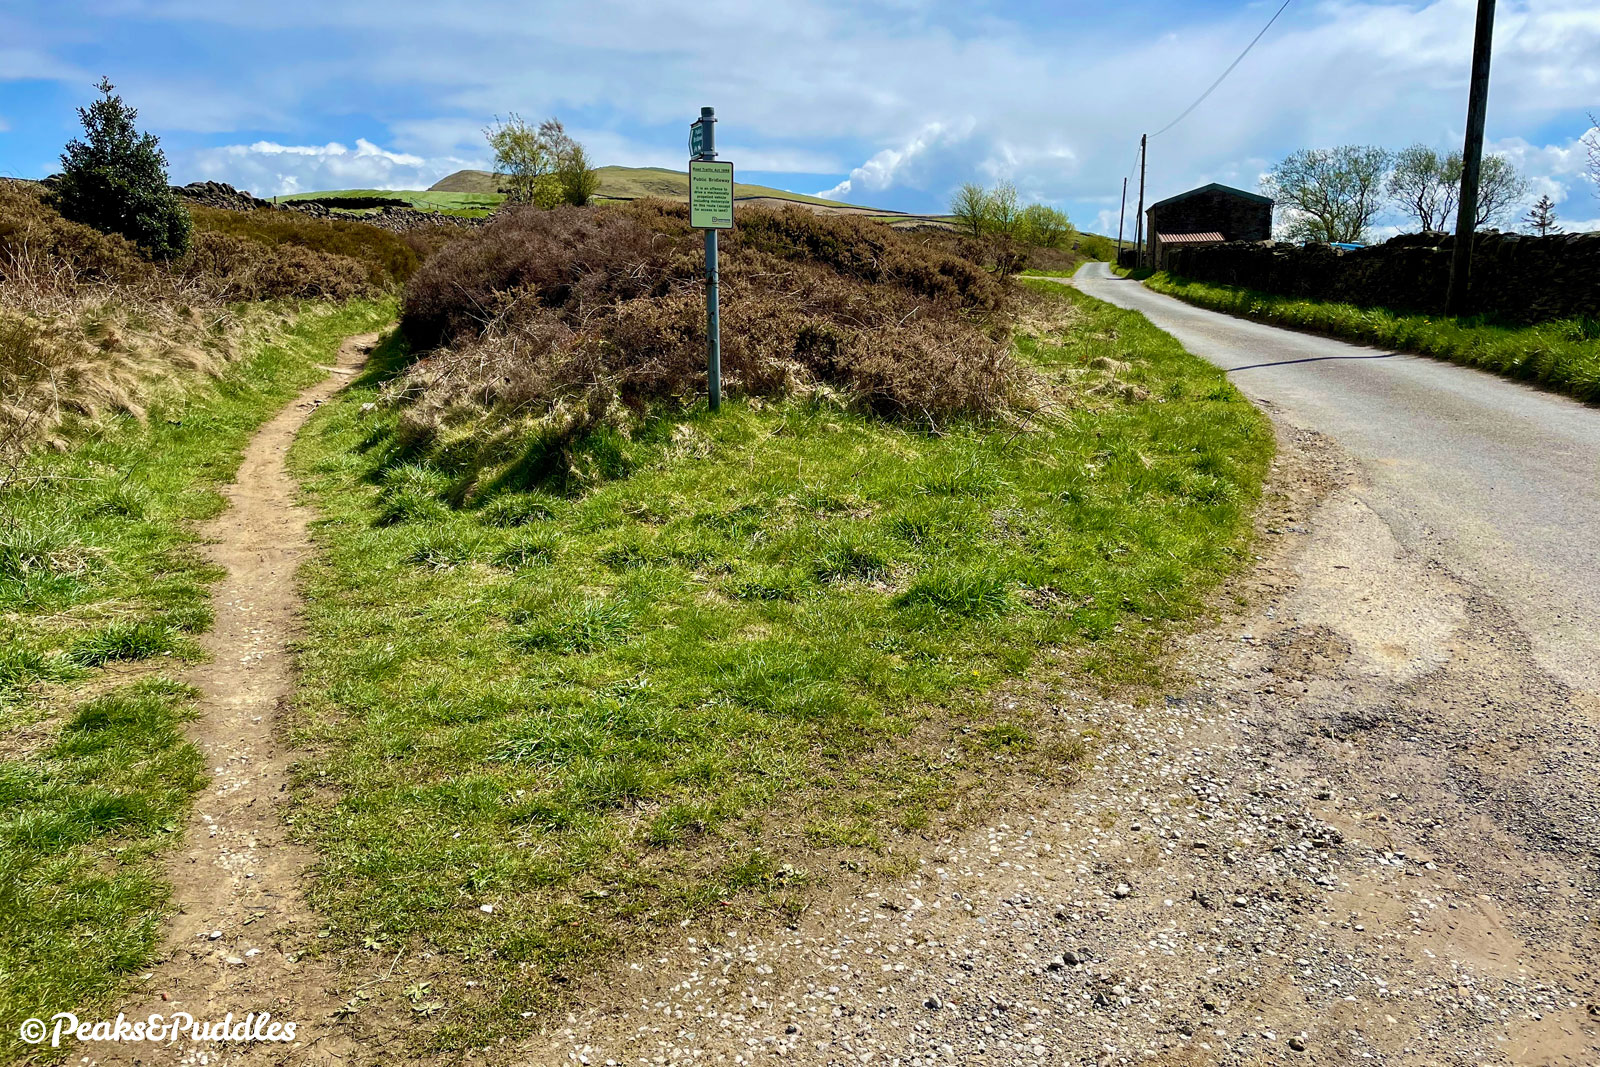 (Bridleway option) Ignore the first, narrow bridleway access and continue just slightly ahead to the next wider track on the left.